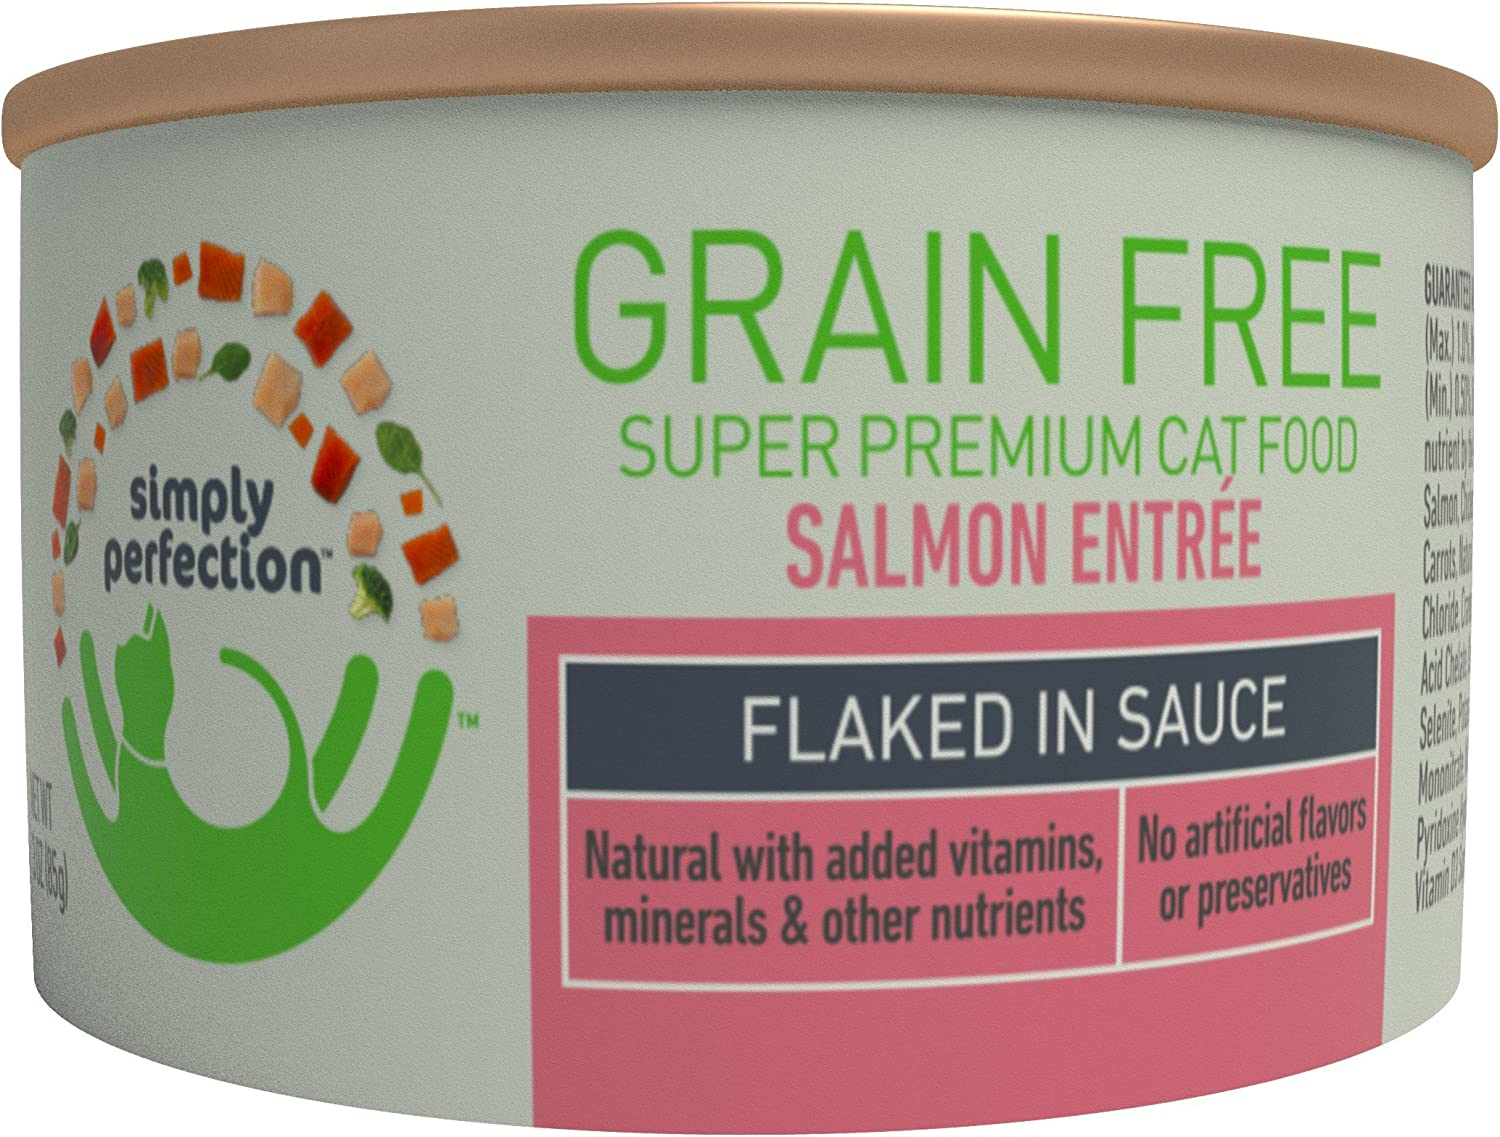 Simply Perfection Super Premium Grain Free Salmon Entree-Flaked 72Oz Case, 24 Cans